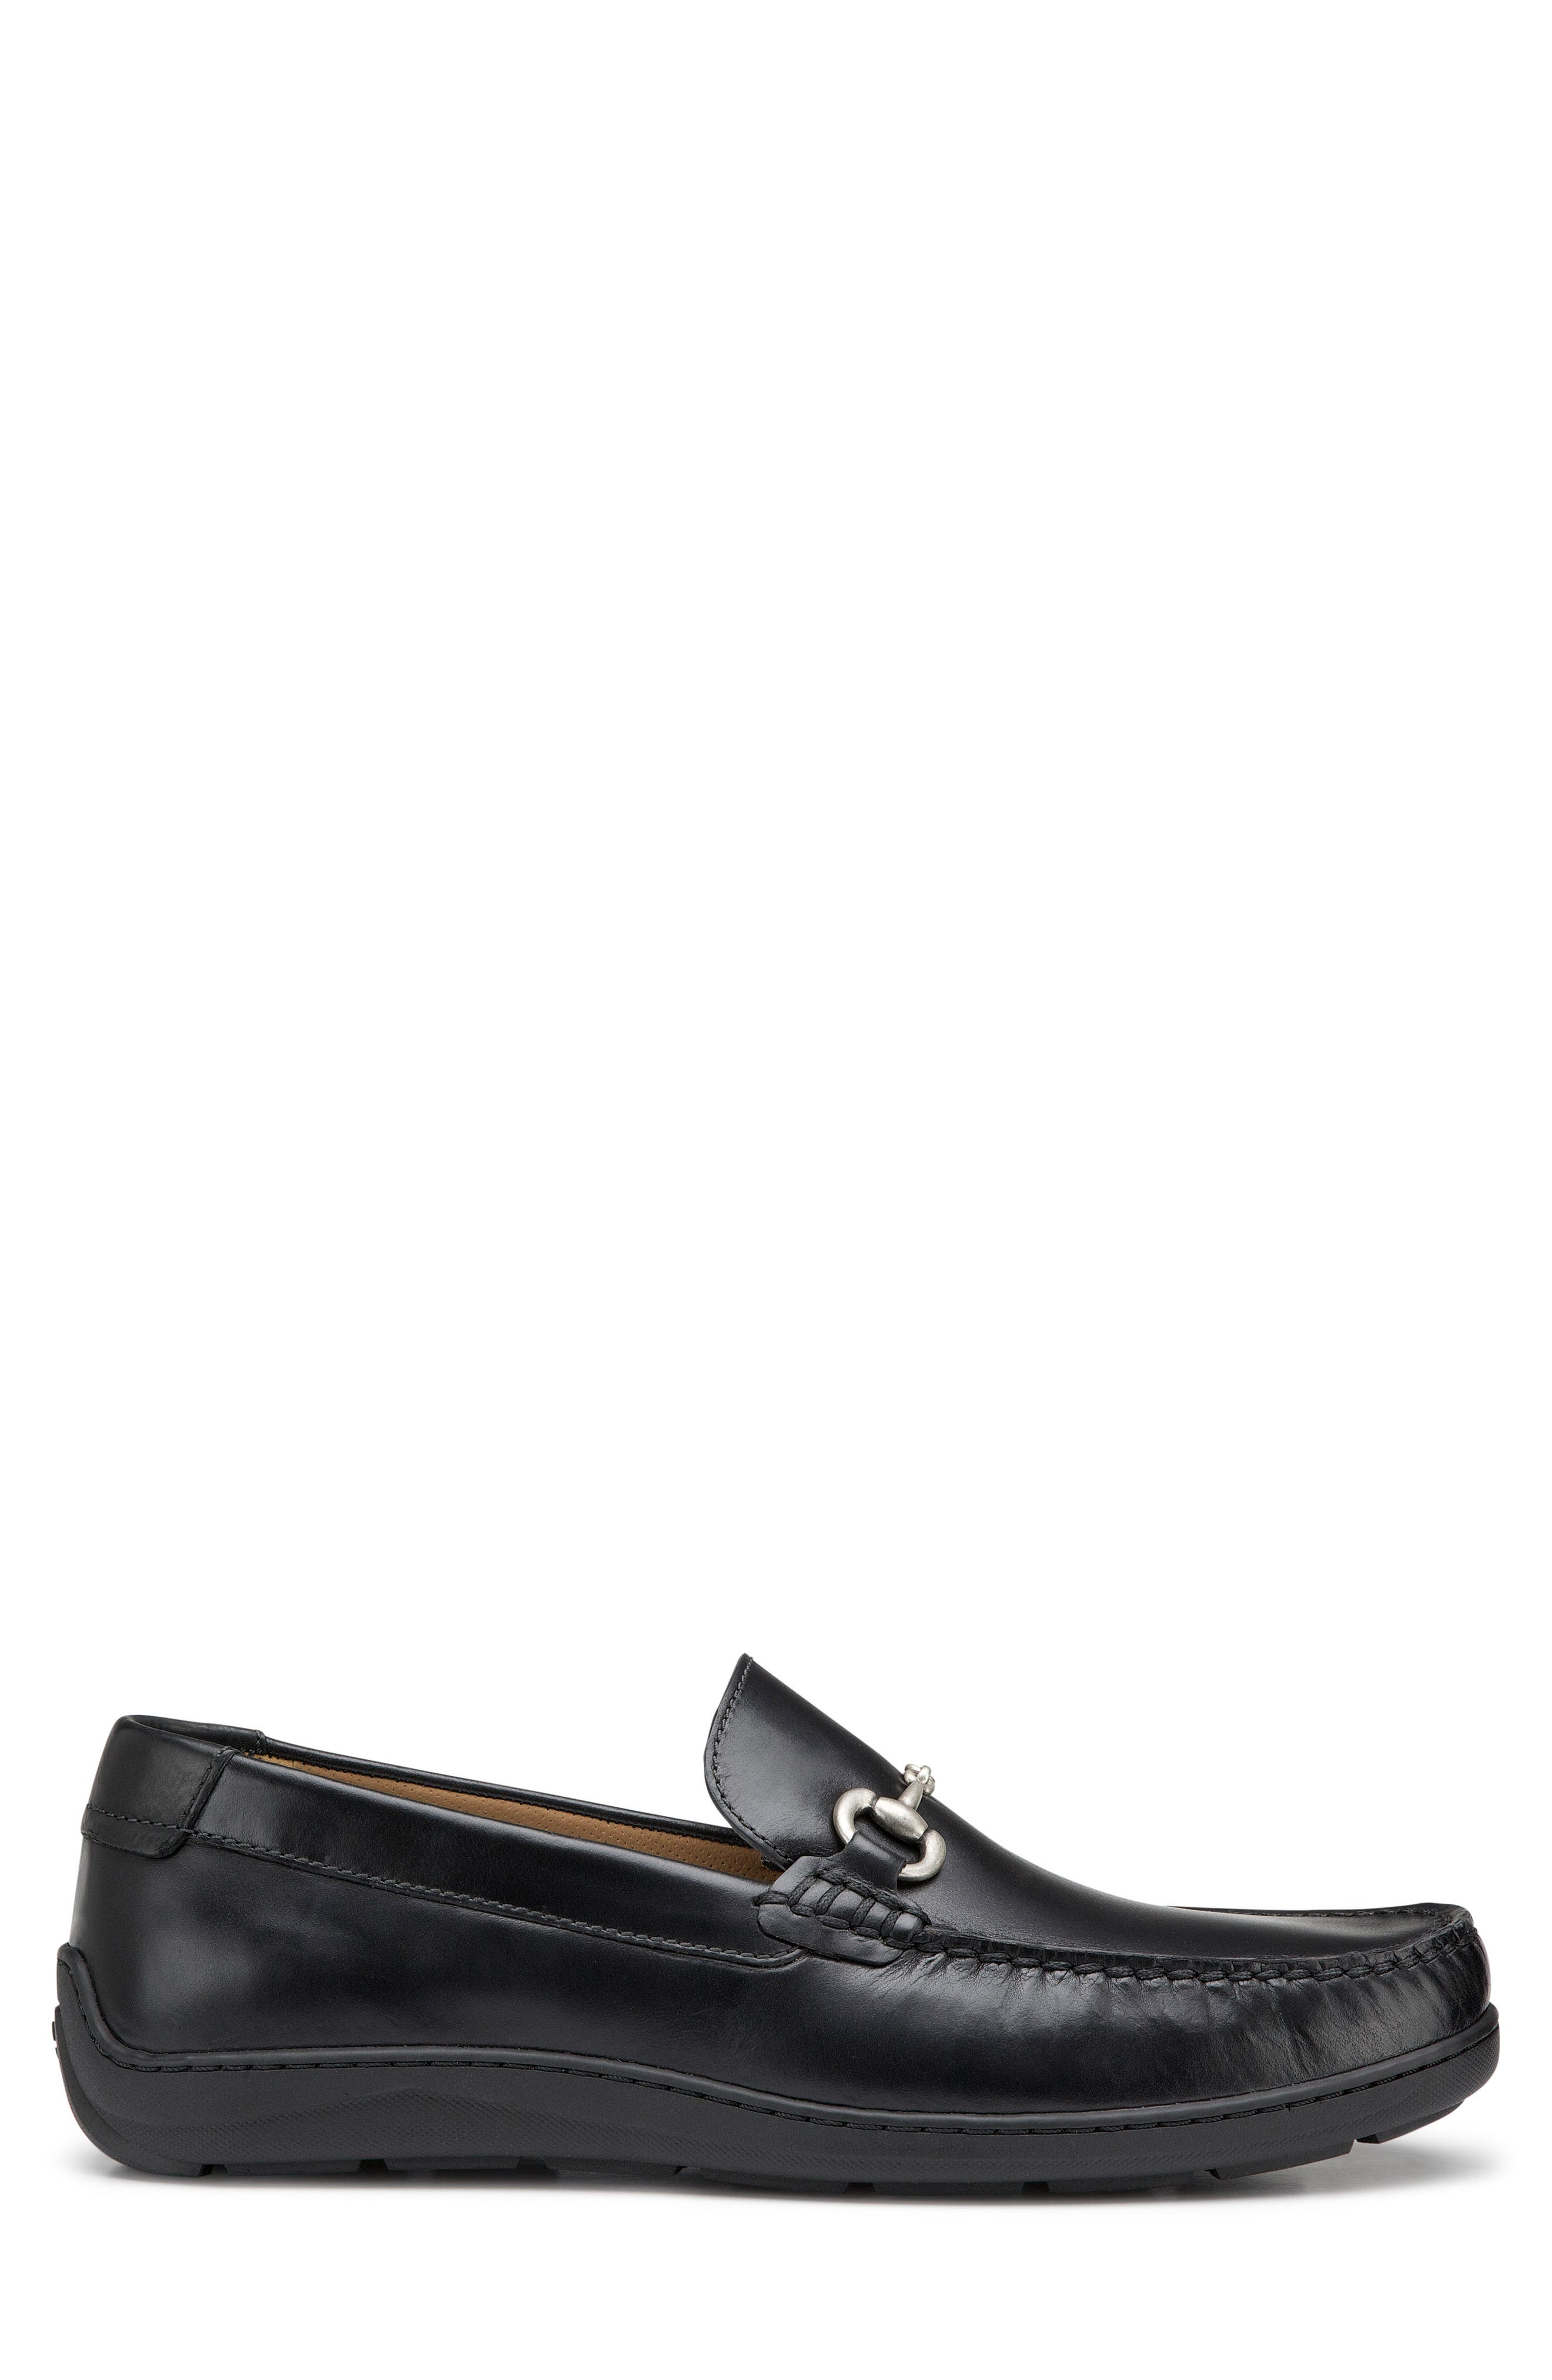 Stalworth Bit Loafer,                             Alternate thumbnail 3, color,                             001